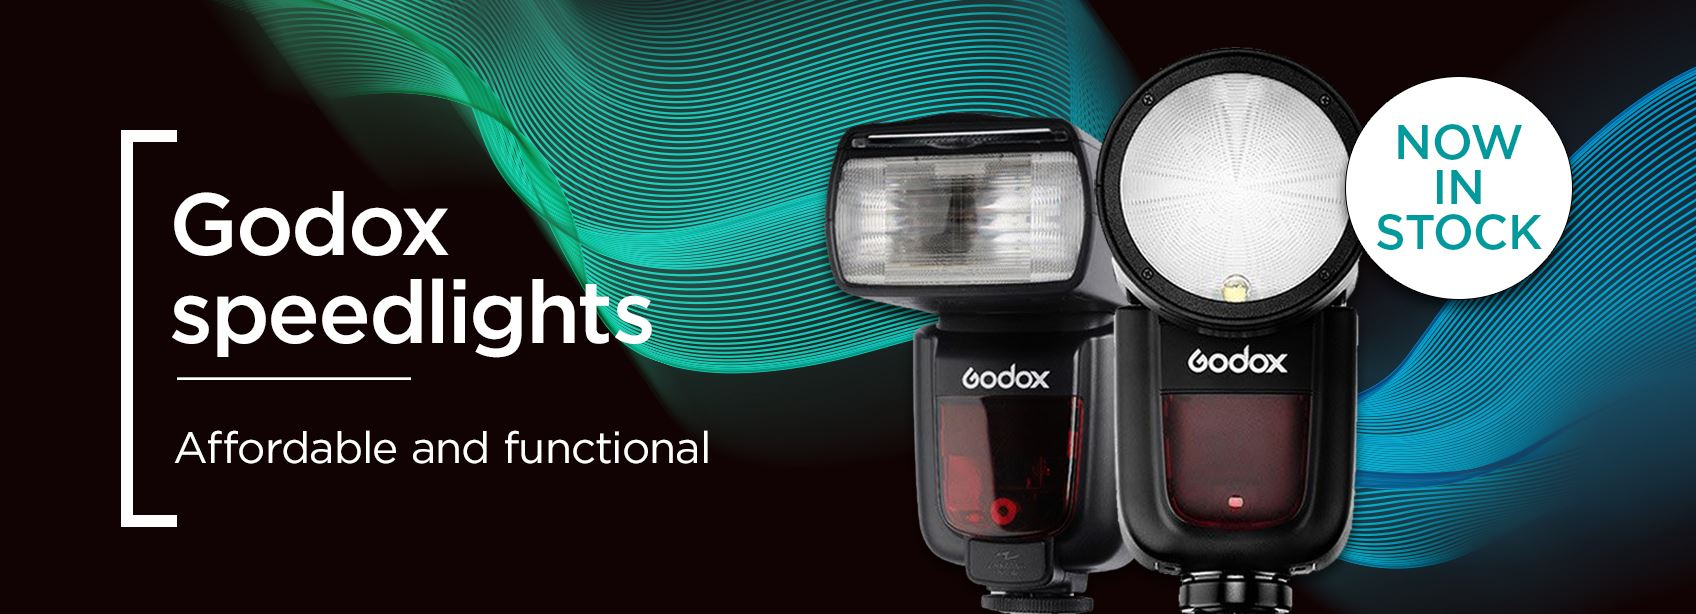 Godox Speedlights | Affordable and Functional